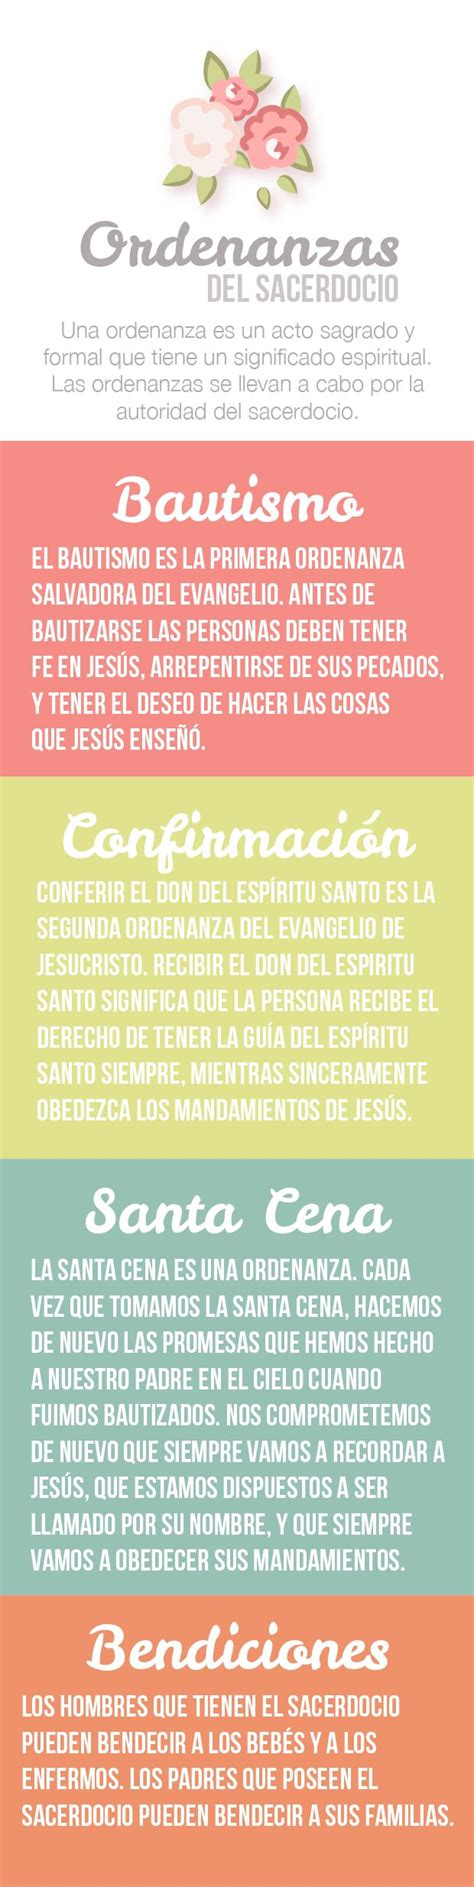 imagenes del sacerdocio sud 1000 images about lds mujeres jovenes on pinterest